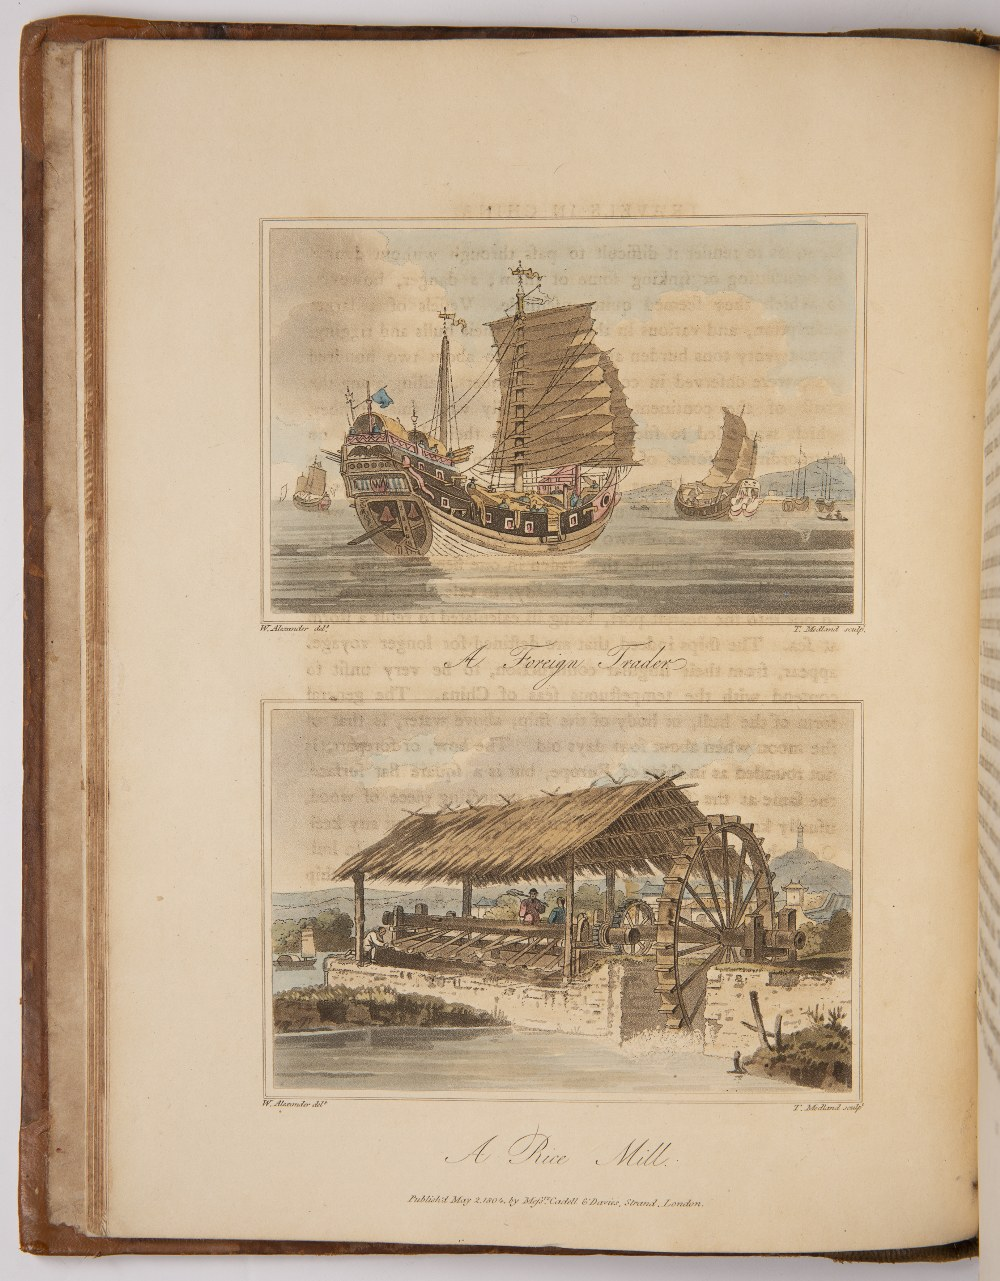 Barrow (John) Travels in China second edition, 5 hand-coloured aquatint plates, 3 engraved plates - Image 6 of 7